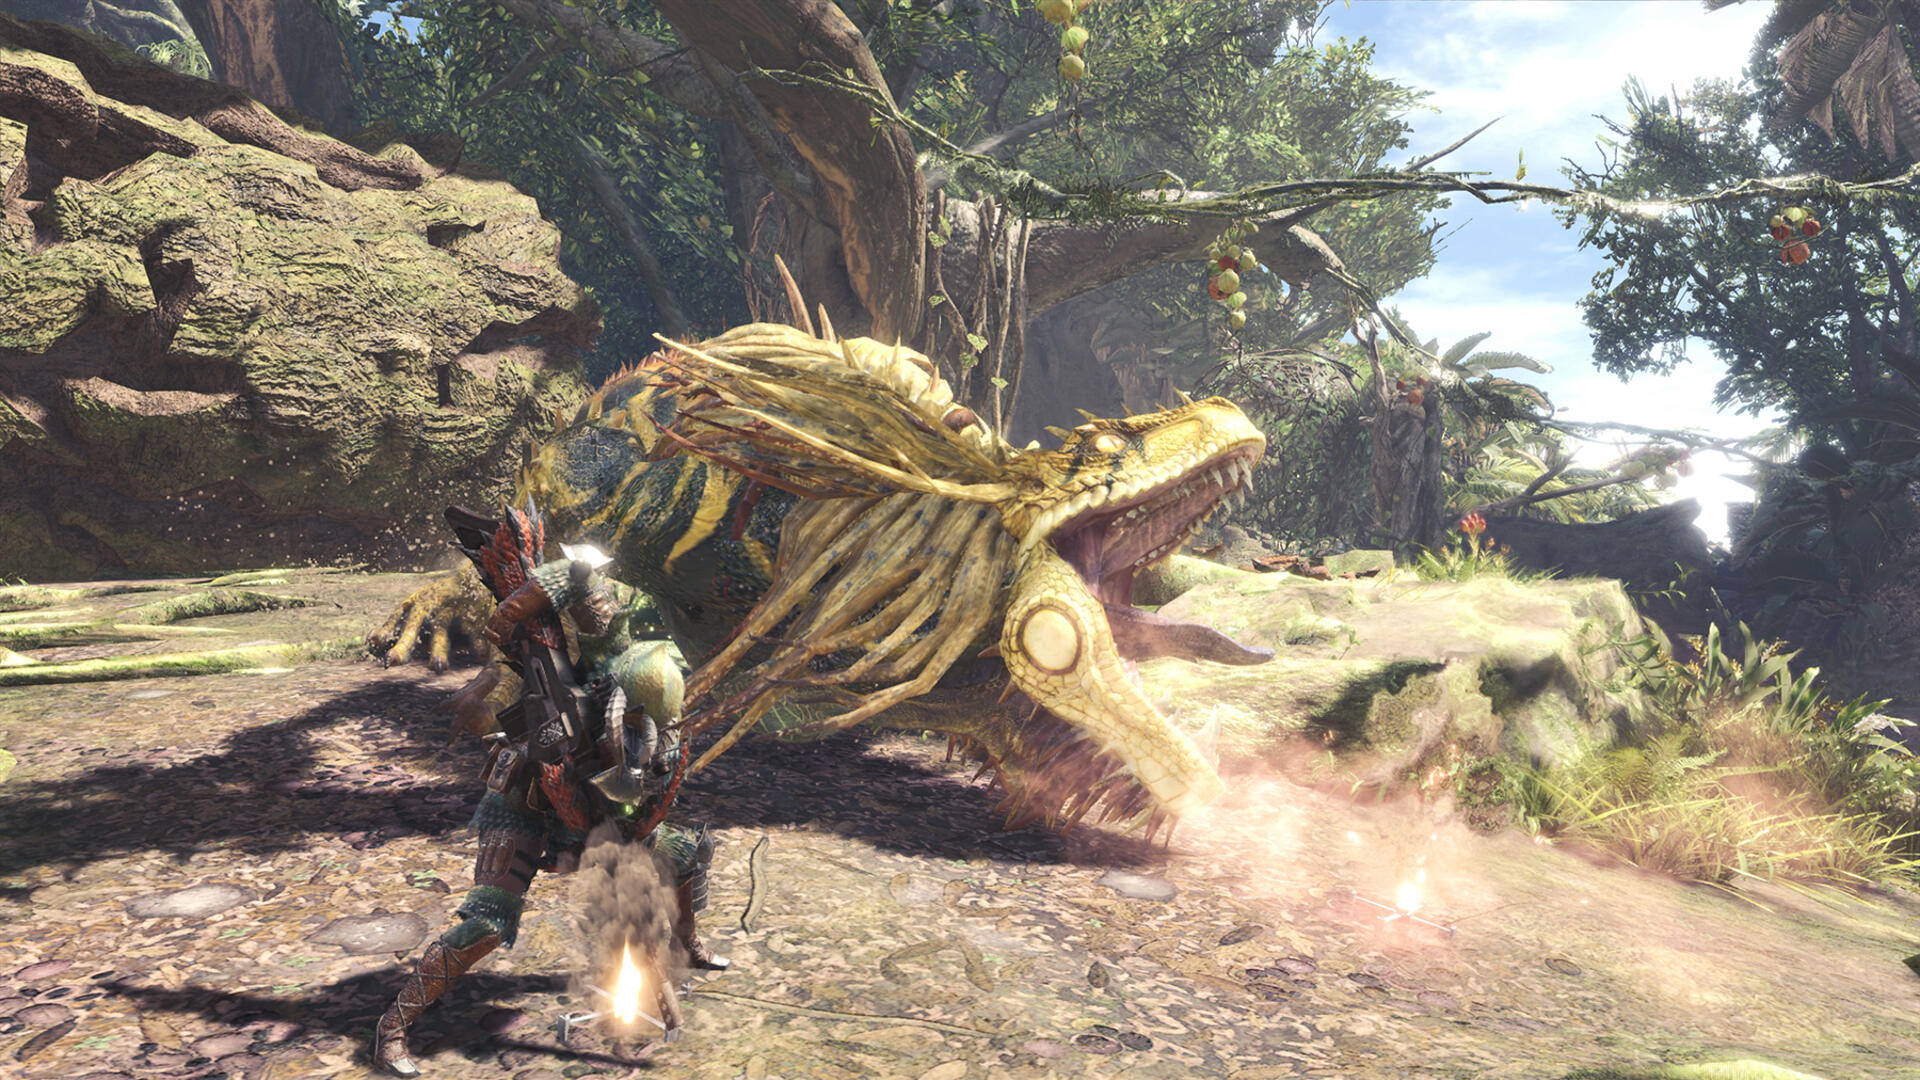 Monster Hunter World Deviljho - How to Track and Kill the Deviljho in Monster Hunter World